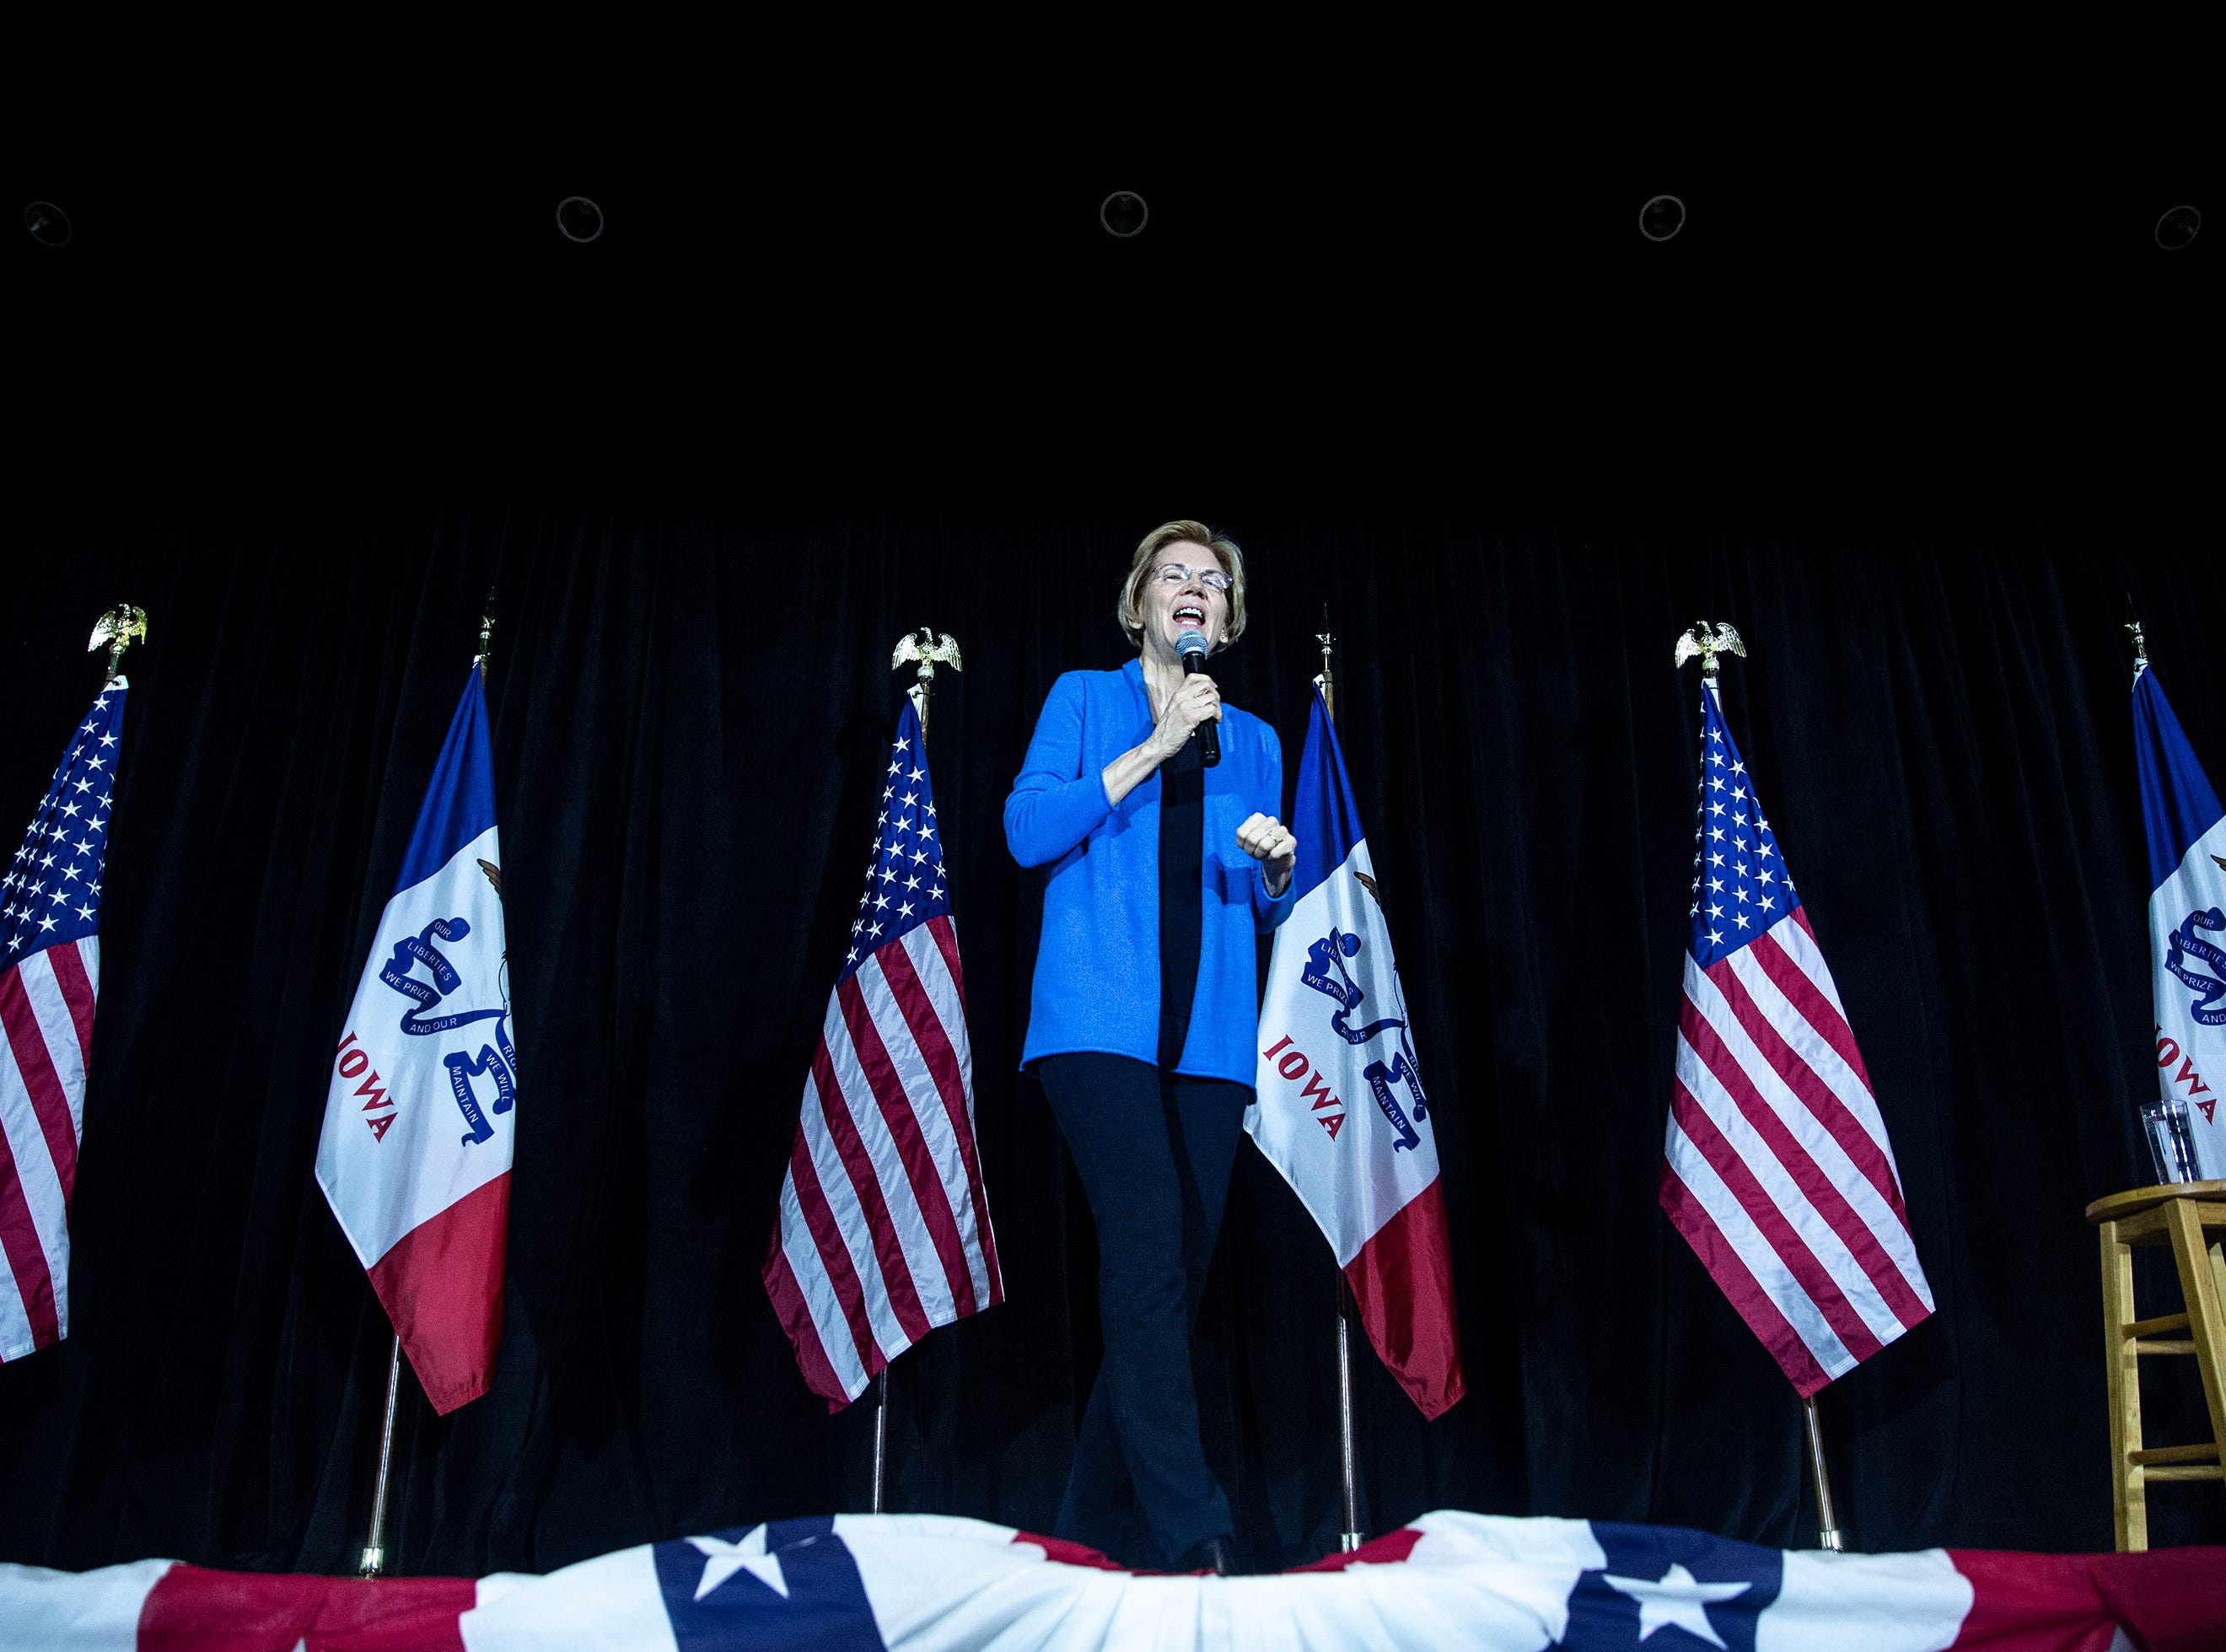 Sen. Elizabeth Warren, D-Mass., speaks in the Veterans Memorial Building in downtown Cedar Rapids on Sunday, Feb. 10, 2019, the day after announcing her run for president.